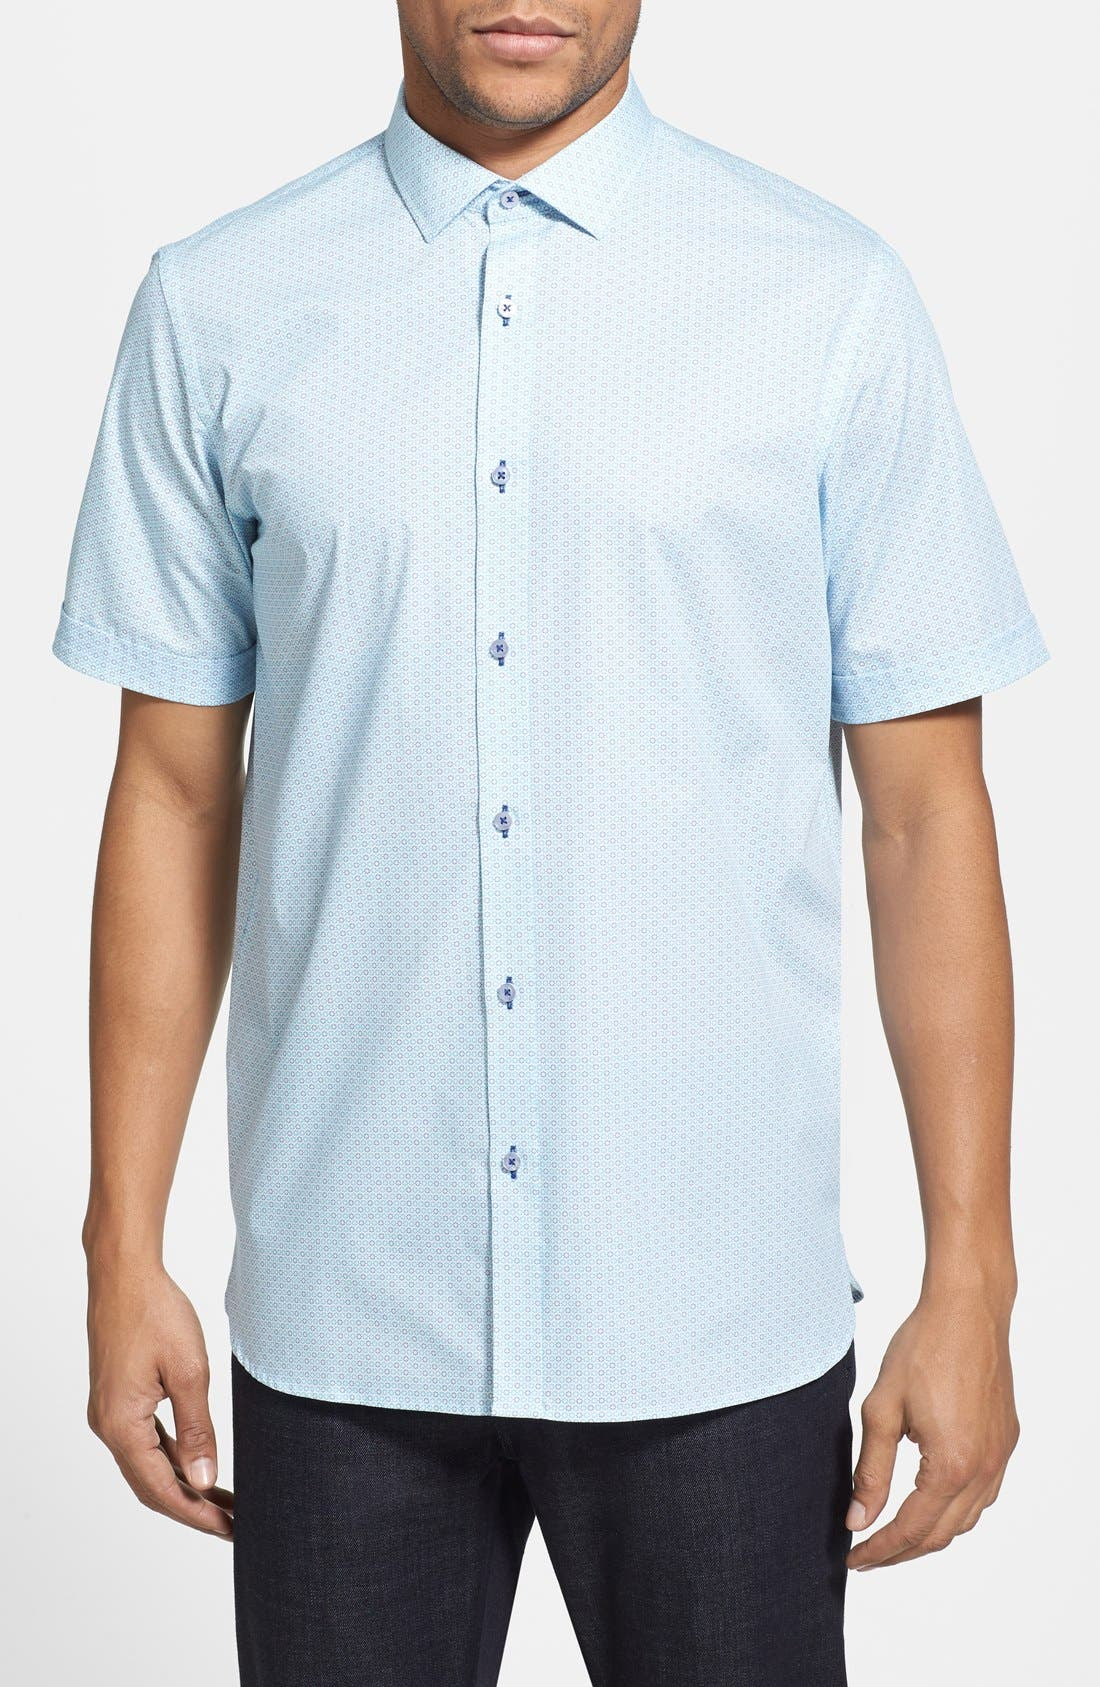 Alternate Image 1 Selected - Report Collection Trim Fit Short Sleeve Sport Shirt